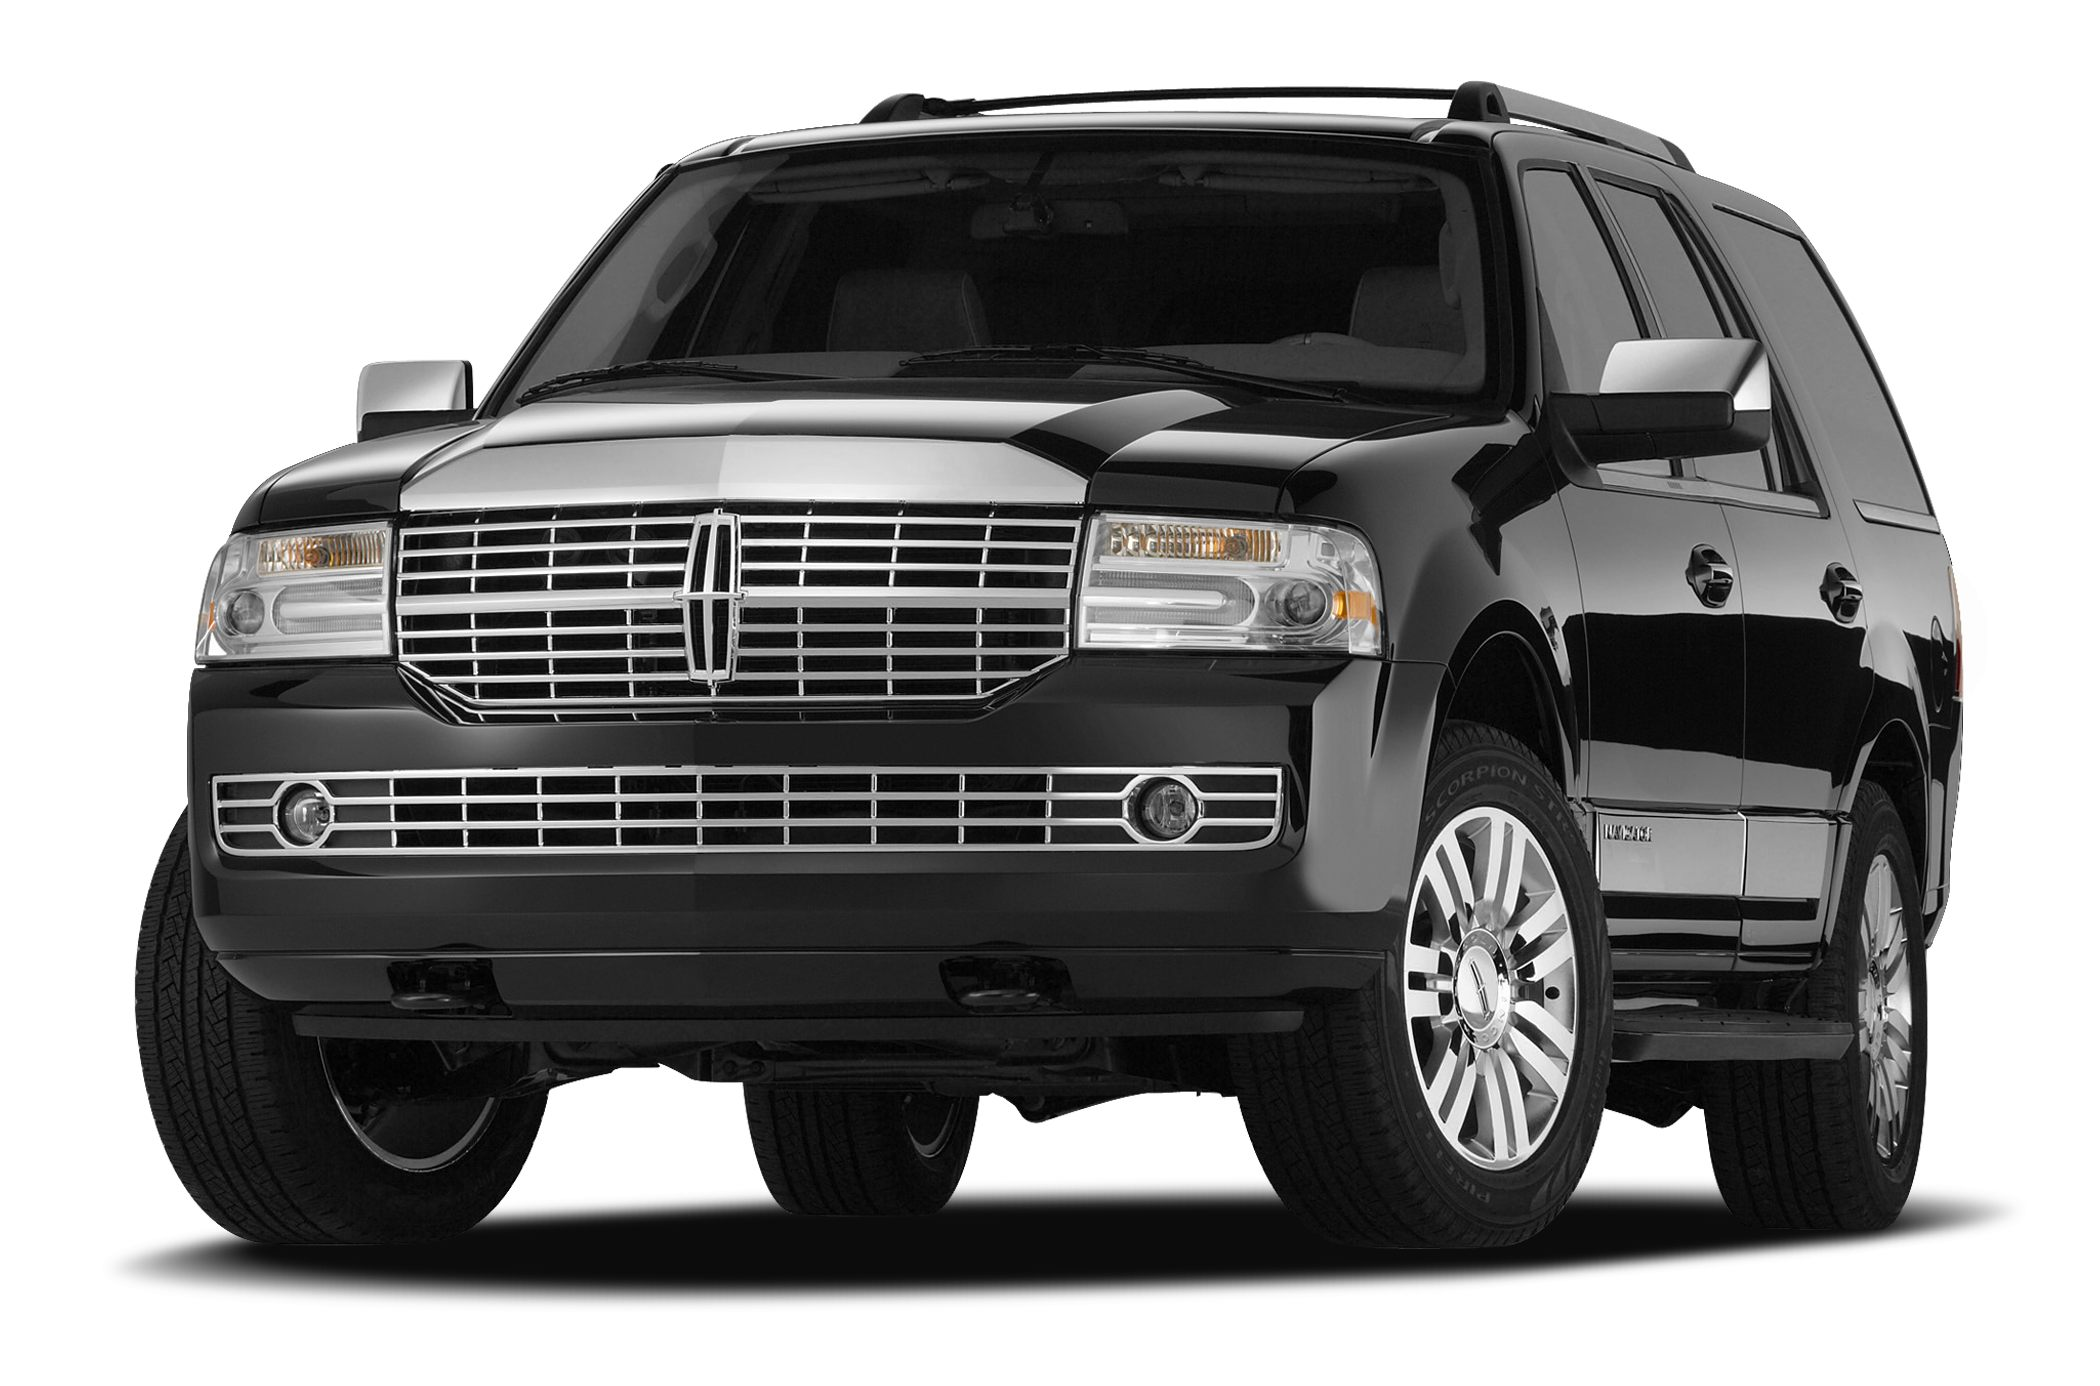 2007 Lincoln Navigator SUV for sale in Zebulon for $14,500 with 137,537 miles